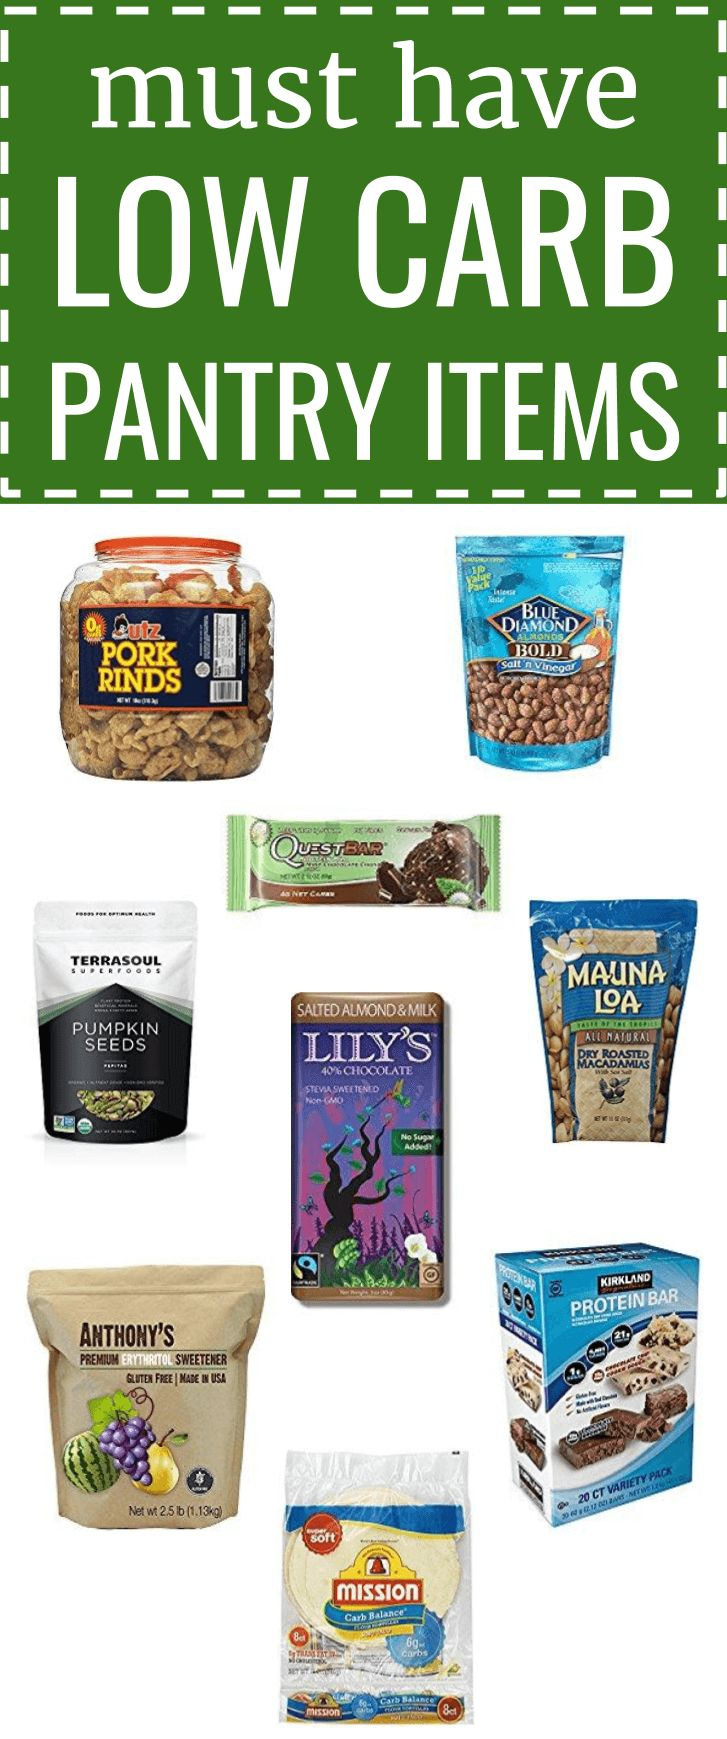 Low carb pantry stuffers, items, and products for a healthy keto lifestyle. staples / must have / list / essential / basic / budget / ketogenic / household / for two / paleo / clean eating / cheap / weekly / home / diet / food / basic / ideas / template / free / ultimate / monthly / weightloss / pantry / easy / essentials / kitchen / simple / categories / dinner / atkins / ideas / meals / recipes / tips / foods / gluten free / paleo #pantry #list #keto #LowCarb